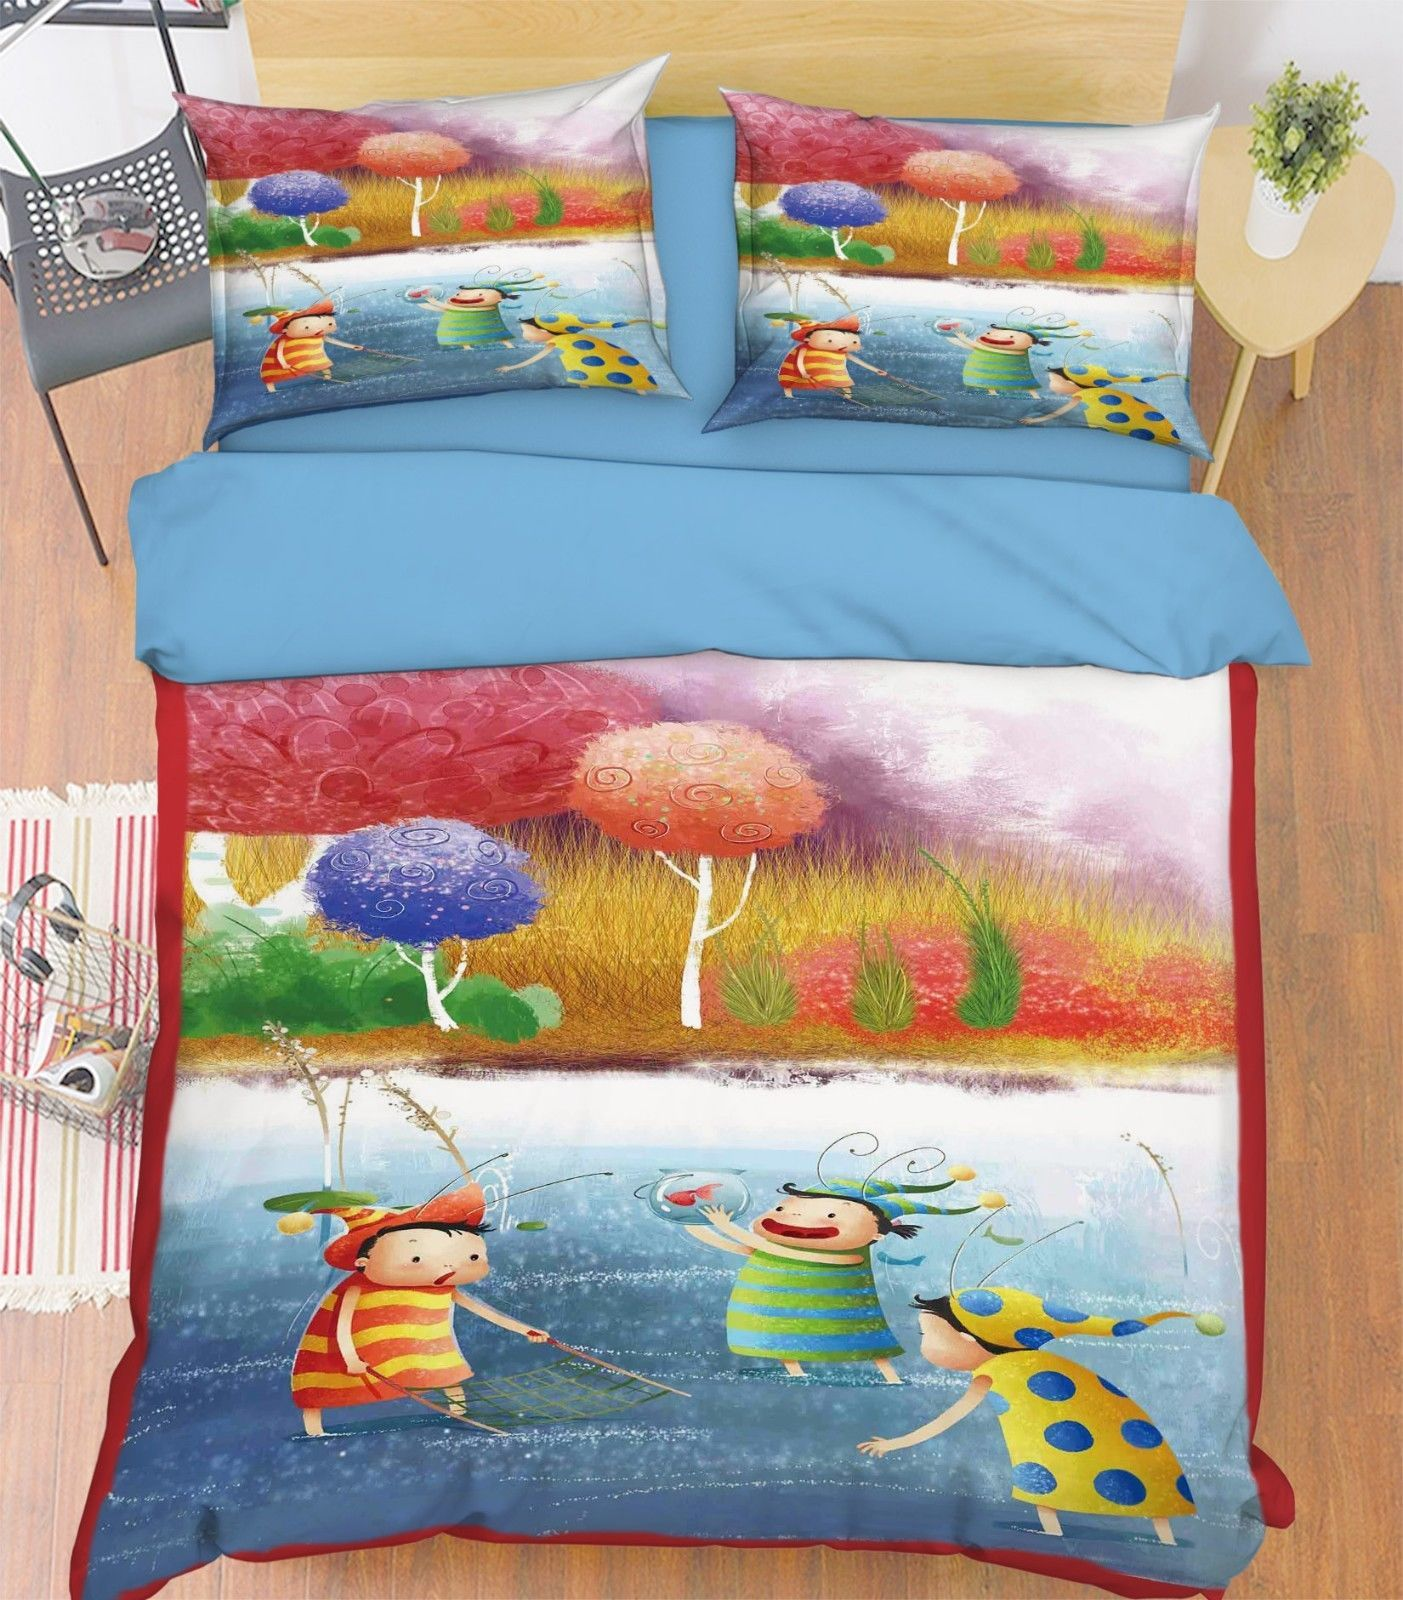 Primary image for 3D Playful Kids Bed Pillowcases Quilt Duvet Cover Set Single Queen King Size AU